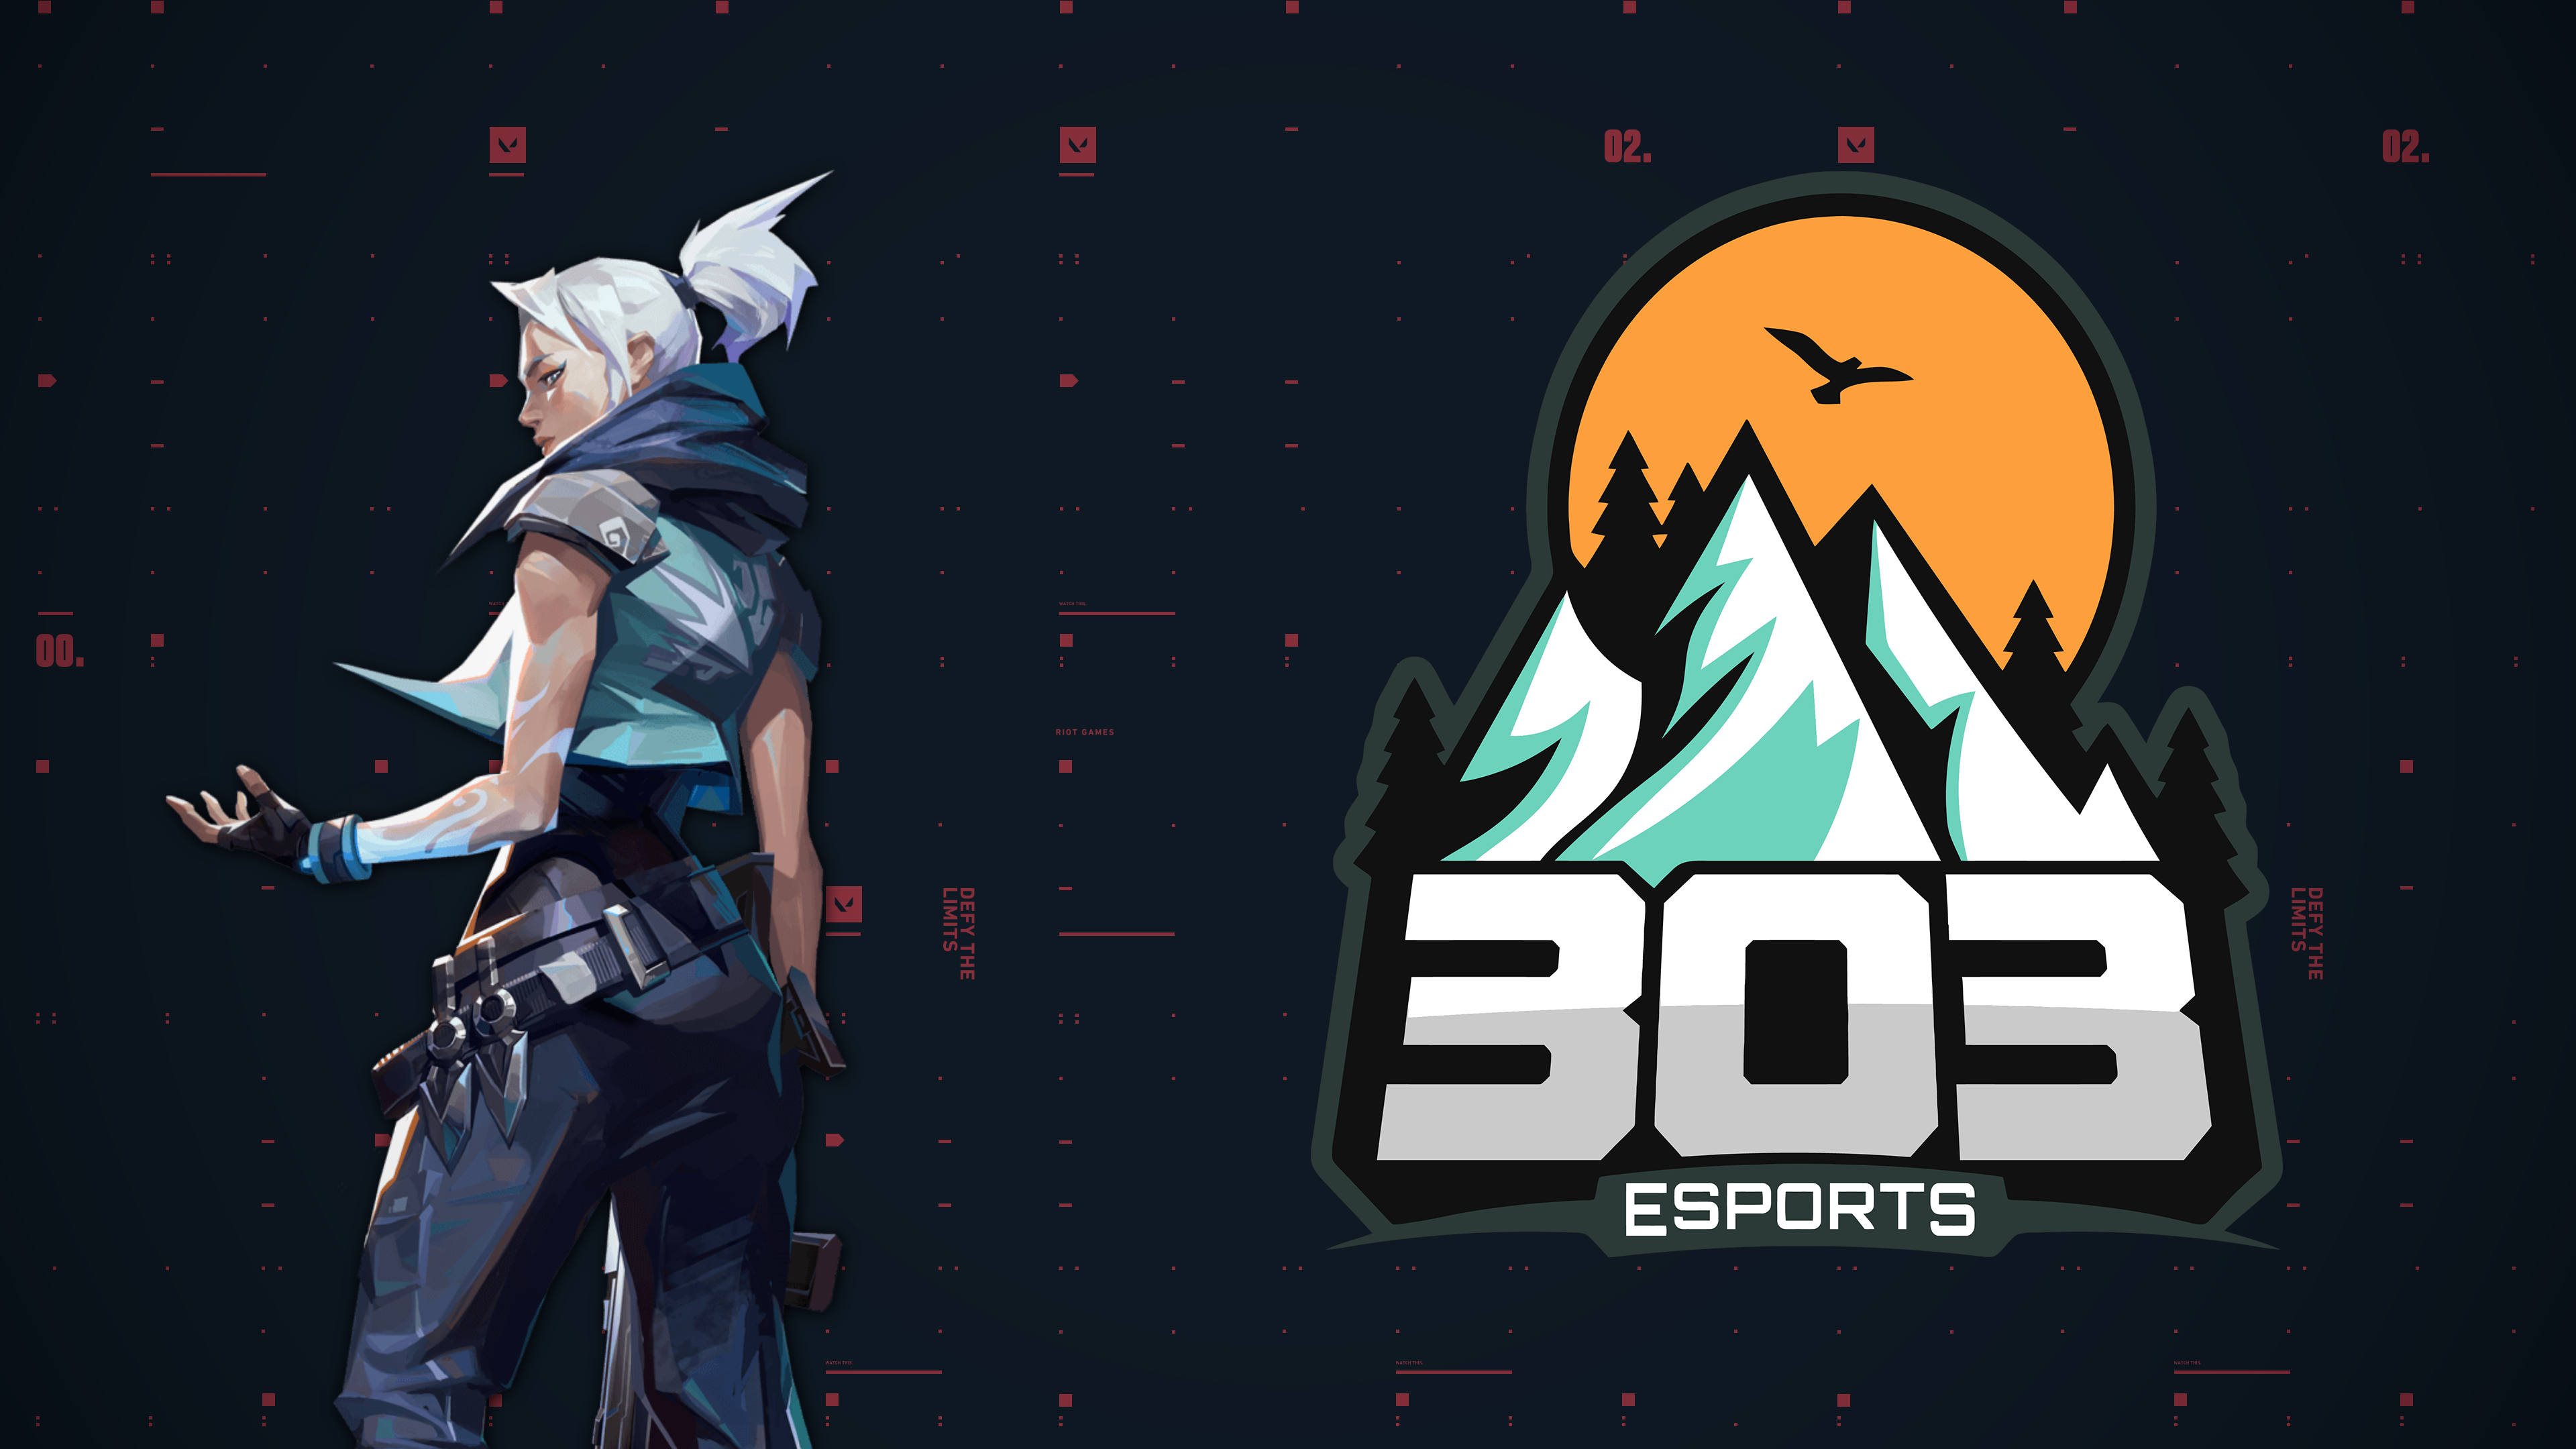 303 Esports' Mirari speaks on state of Valorant in exclusive interview